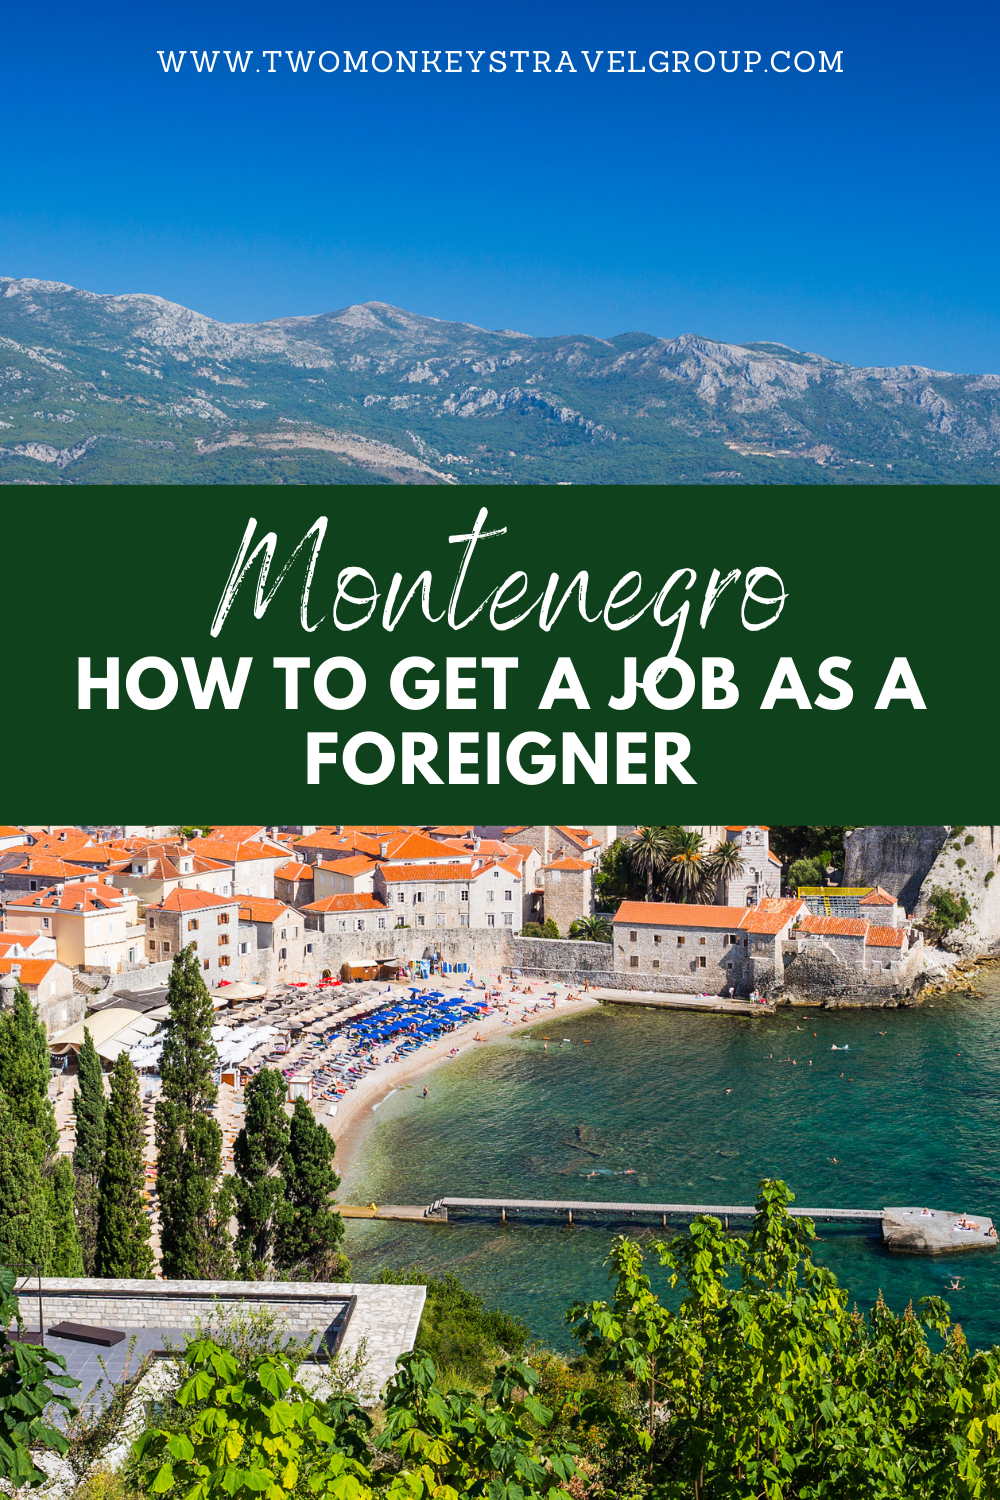 How To Get a Job in Montenegro as a Foreigner [Find Work in Montenegro]